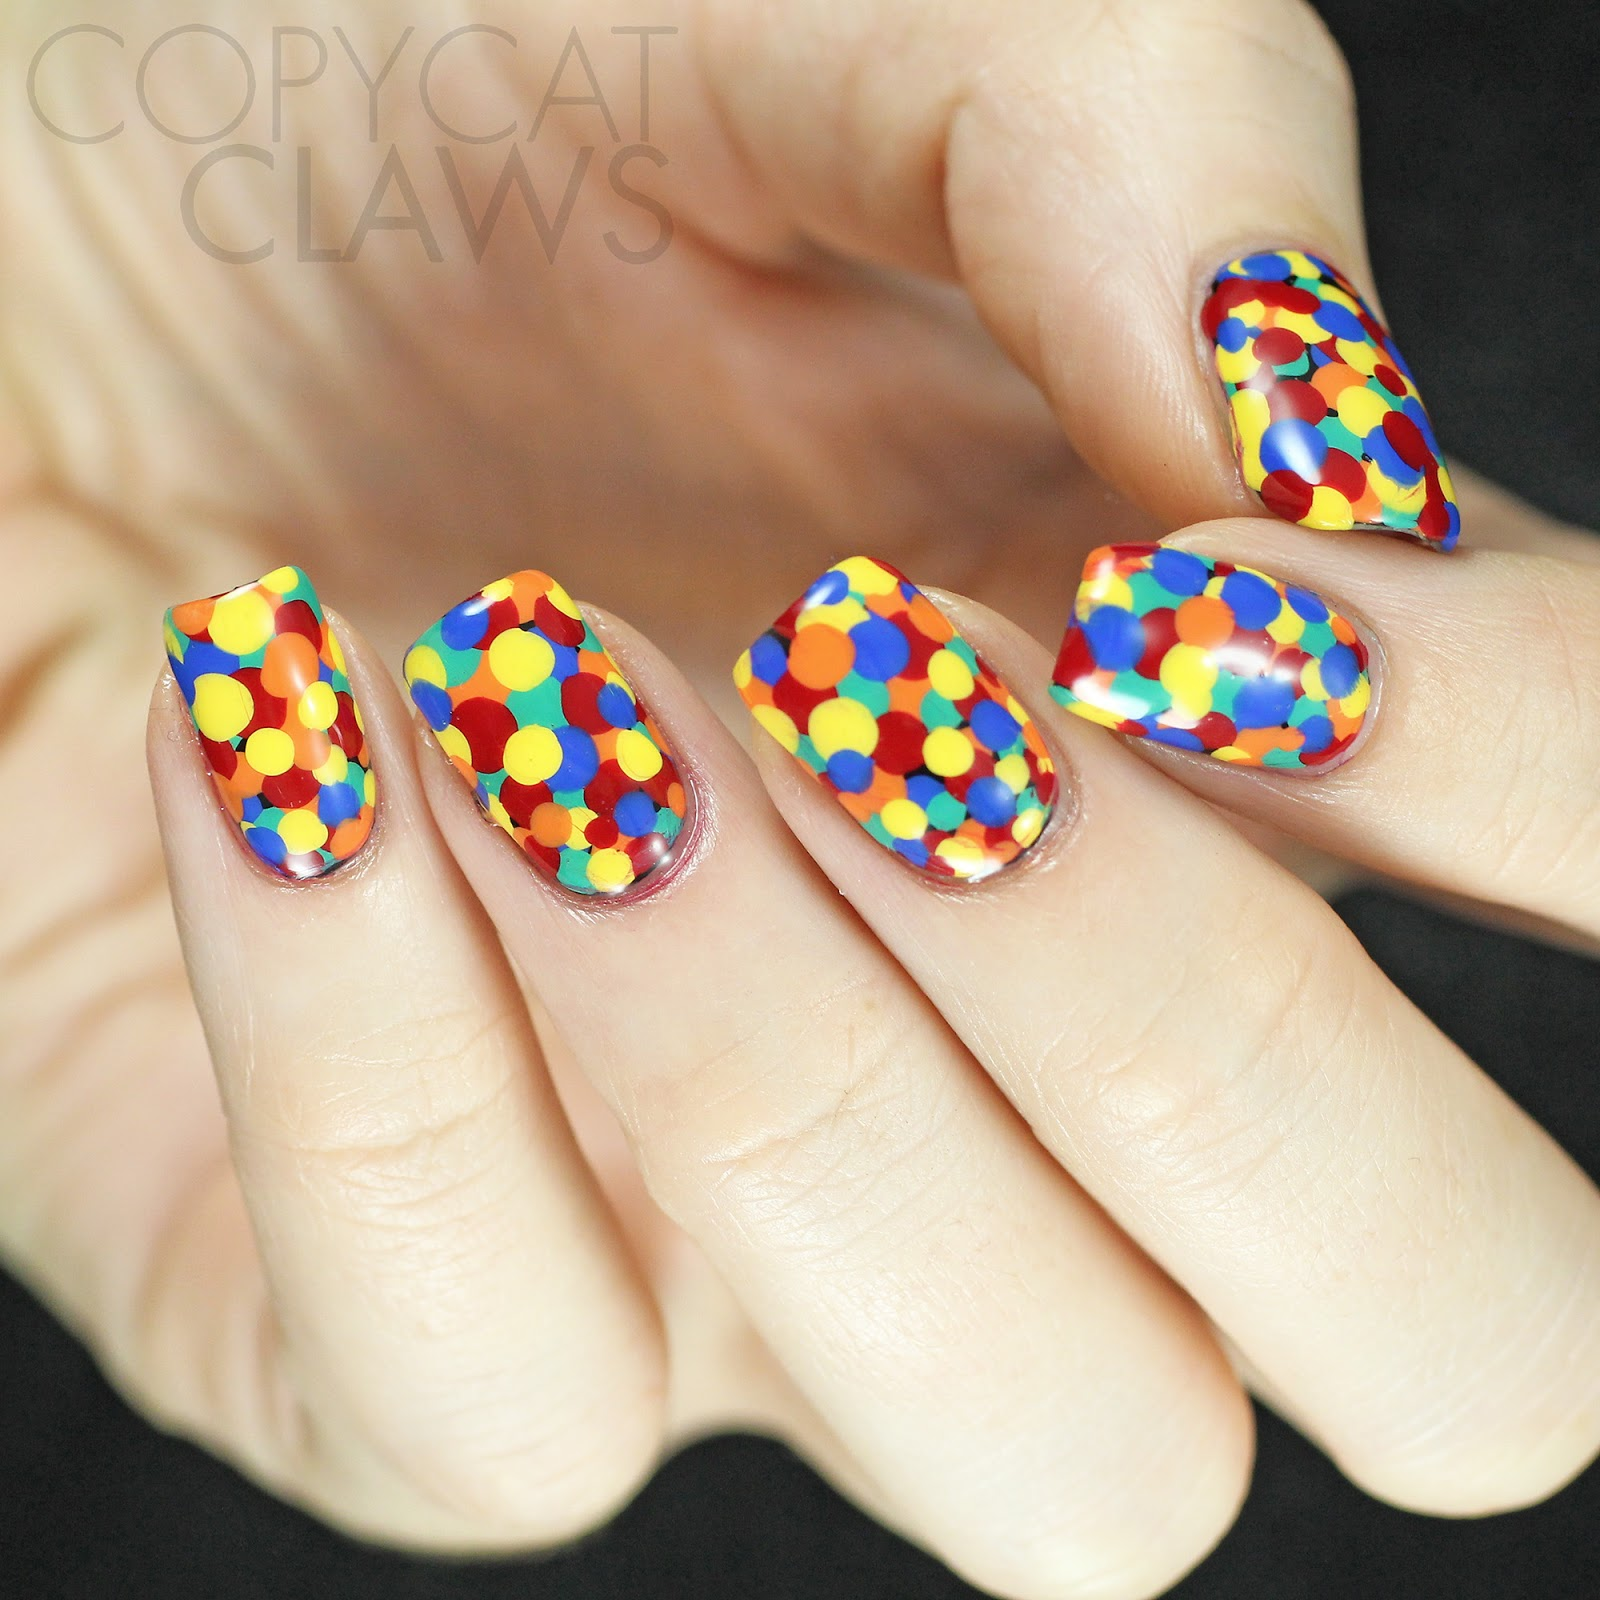 Copycat Claws Blue Color Block Nail Art: Copycat Claws: Primary Color Dotticure